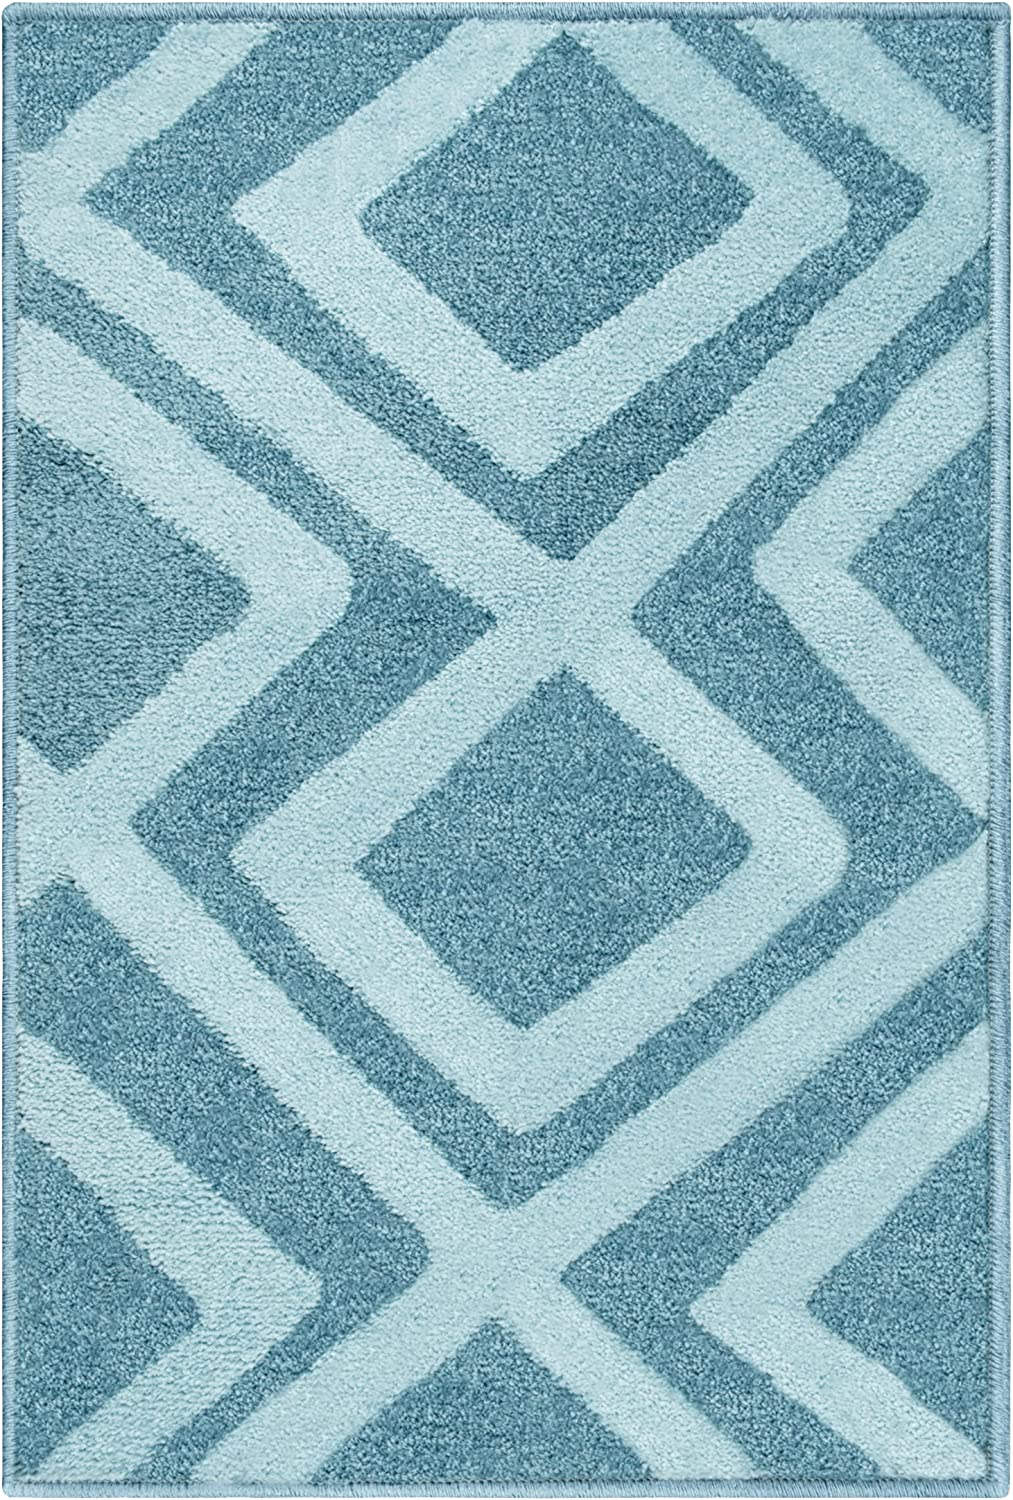 Superior Flagstone Collection 2 x 3 Blue Quality and Affordable Area Rugs 6mm Pile Height with Jute Backing